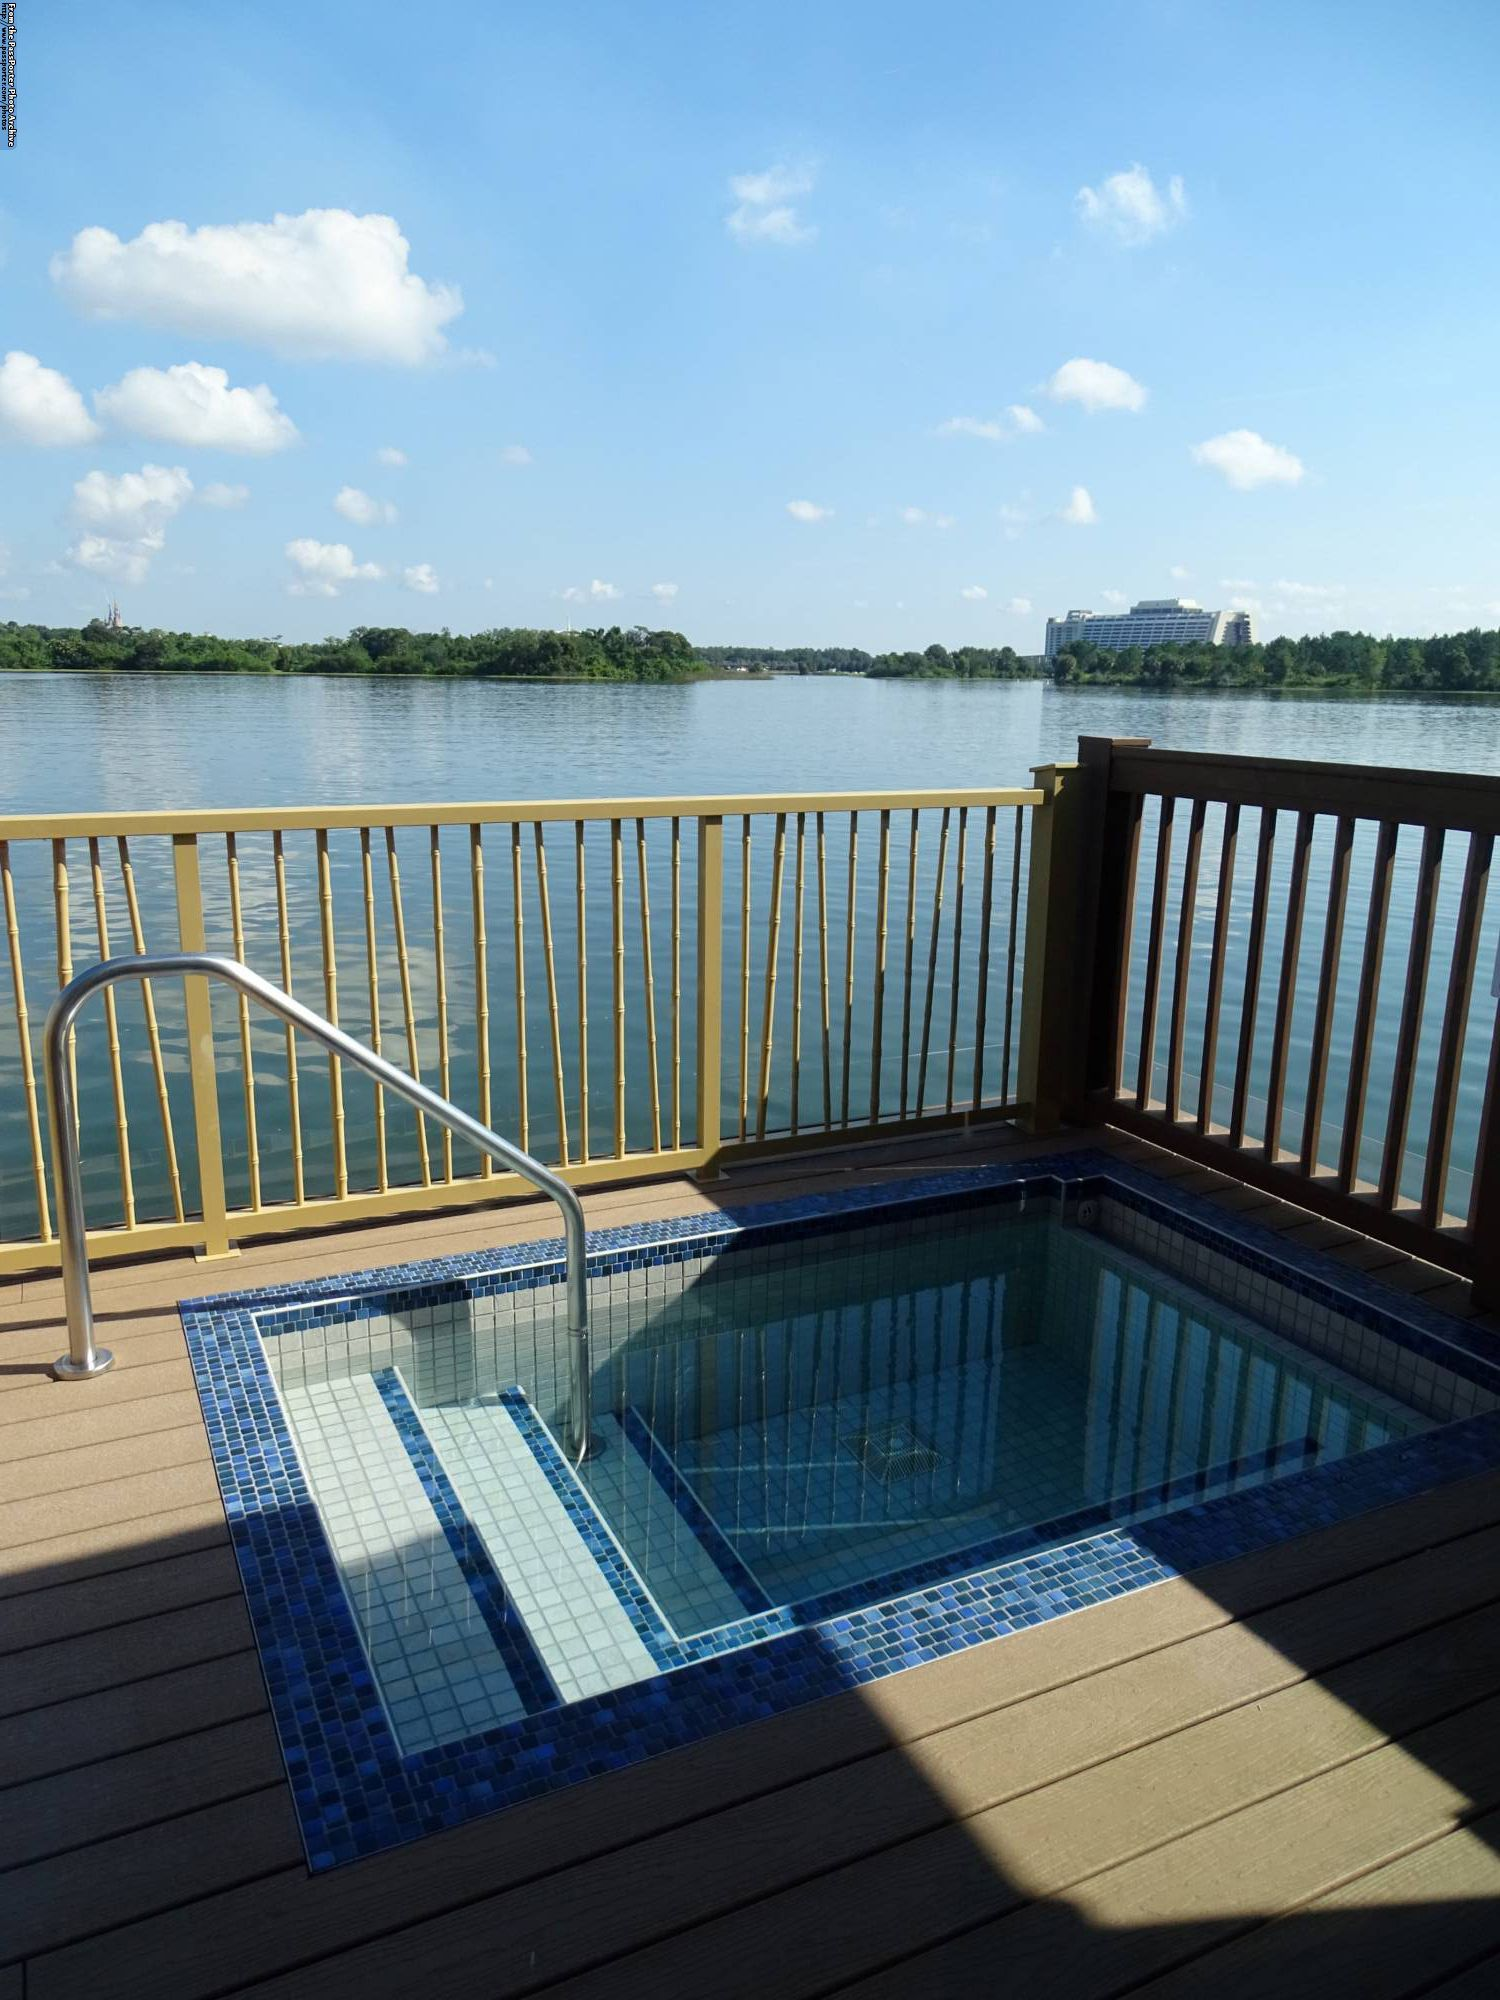 Enjoy the luxury and serenity of a stay in a Waterfront Bungalow at Disney's Polynesian Resort | PassPorter.com